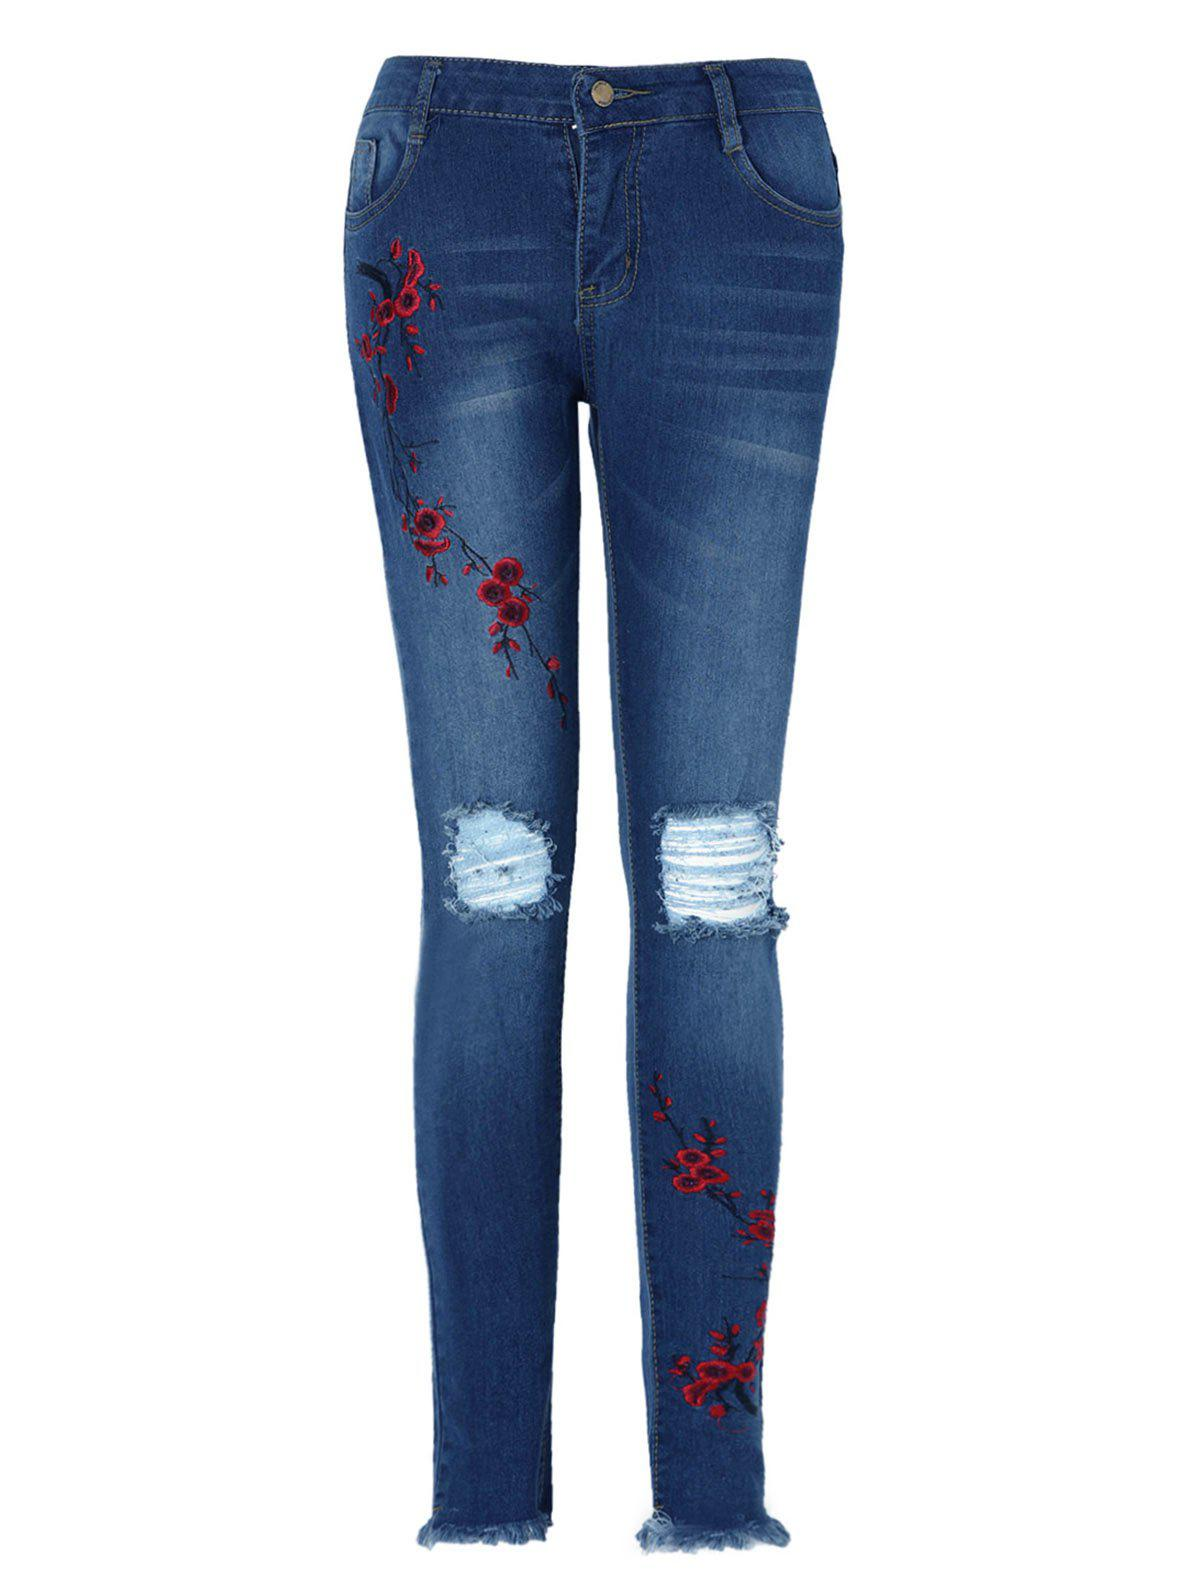 Shop Floral Embroidered Ripped Jeans